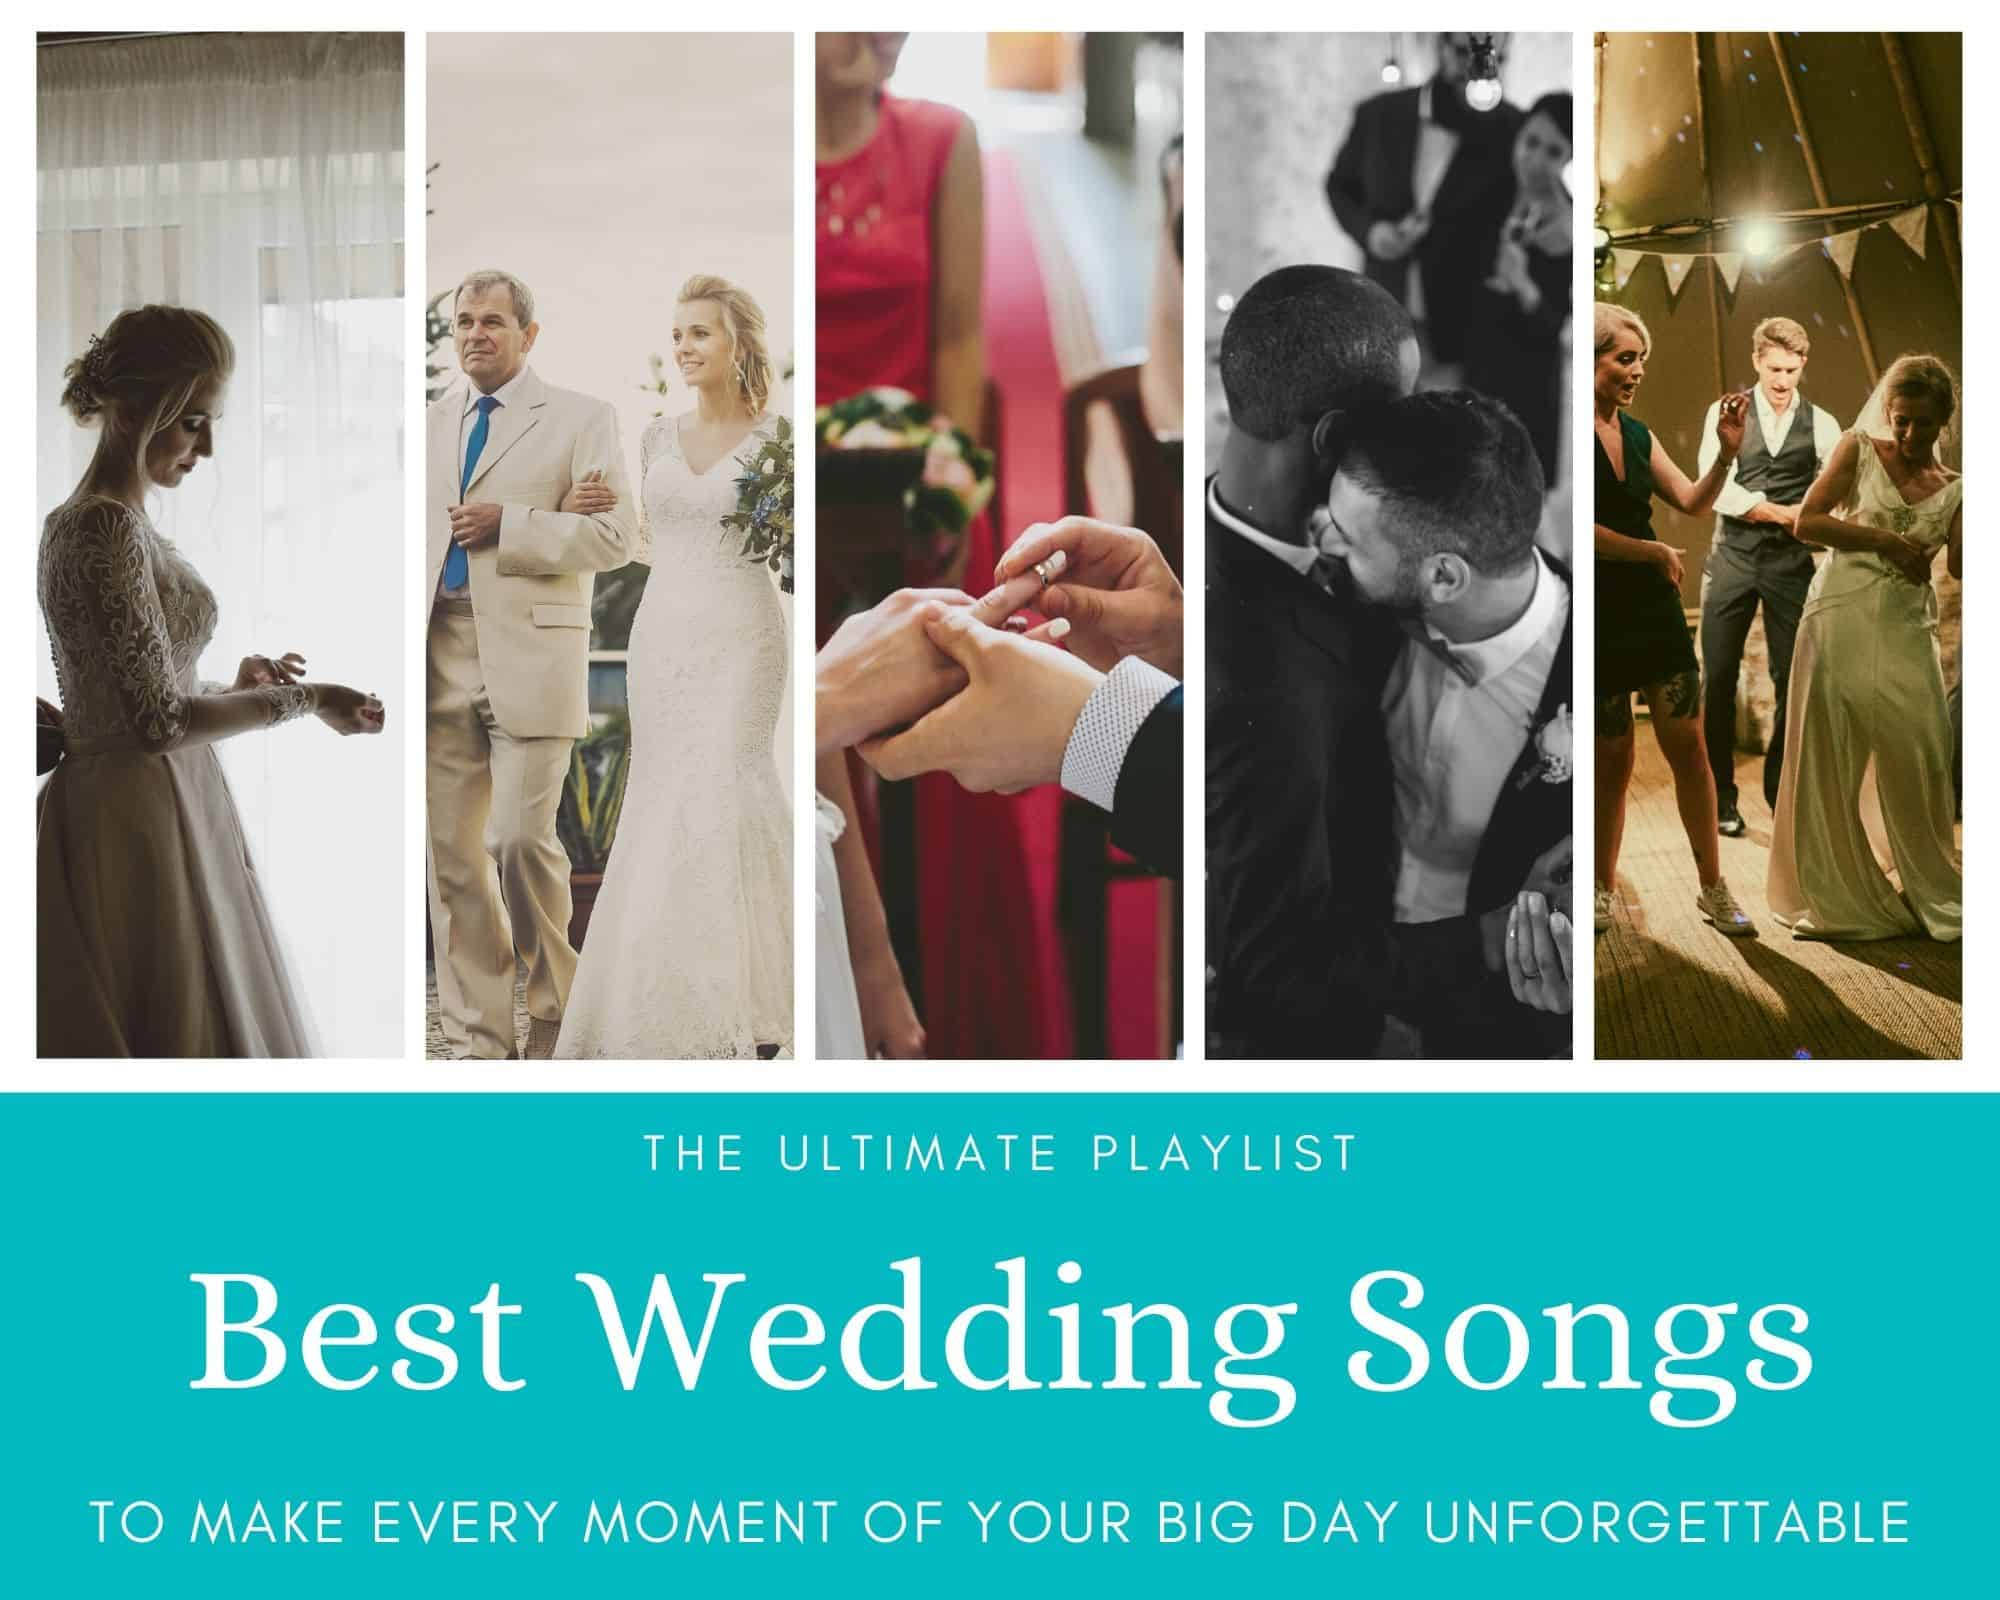 Best Wedding Songs Playlist